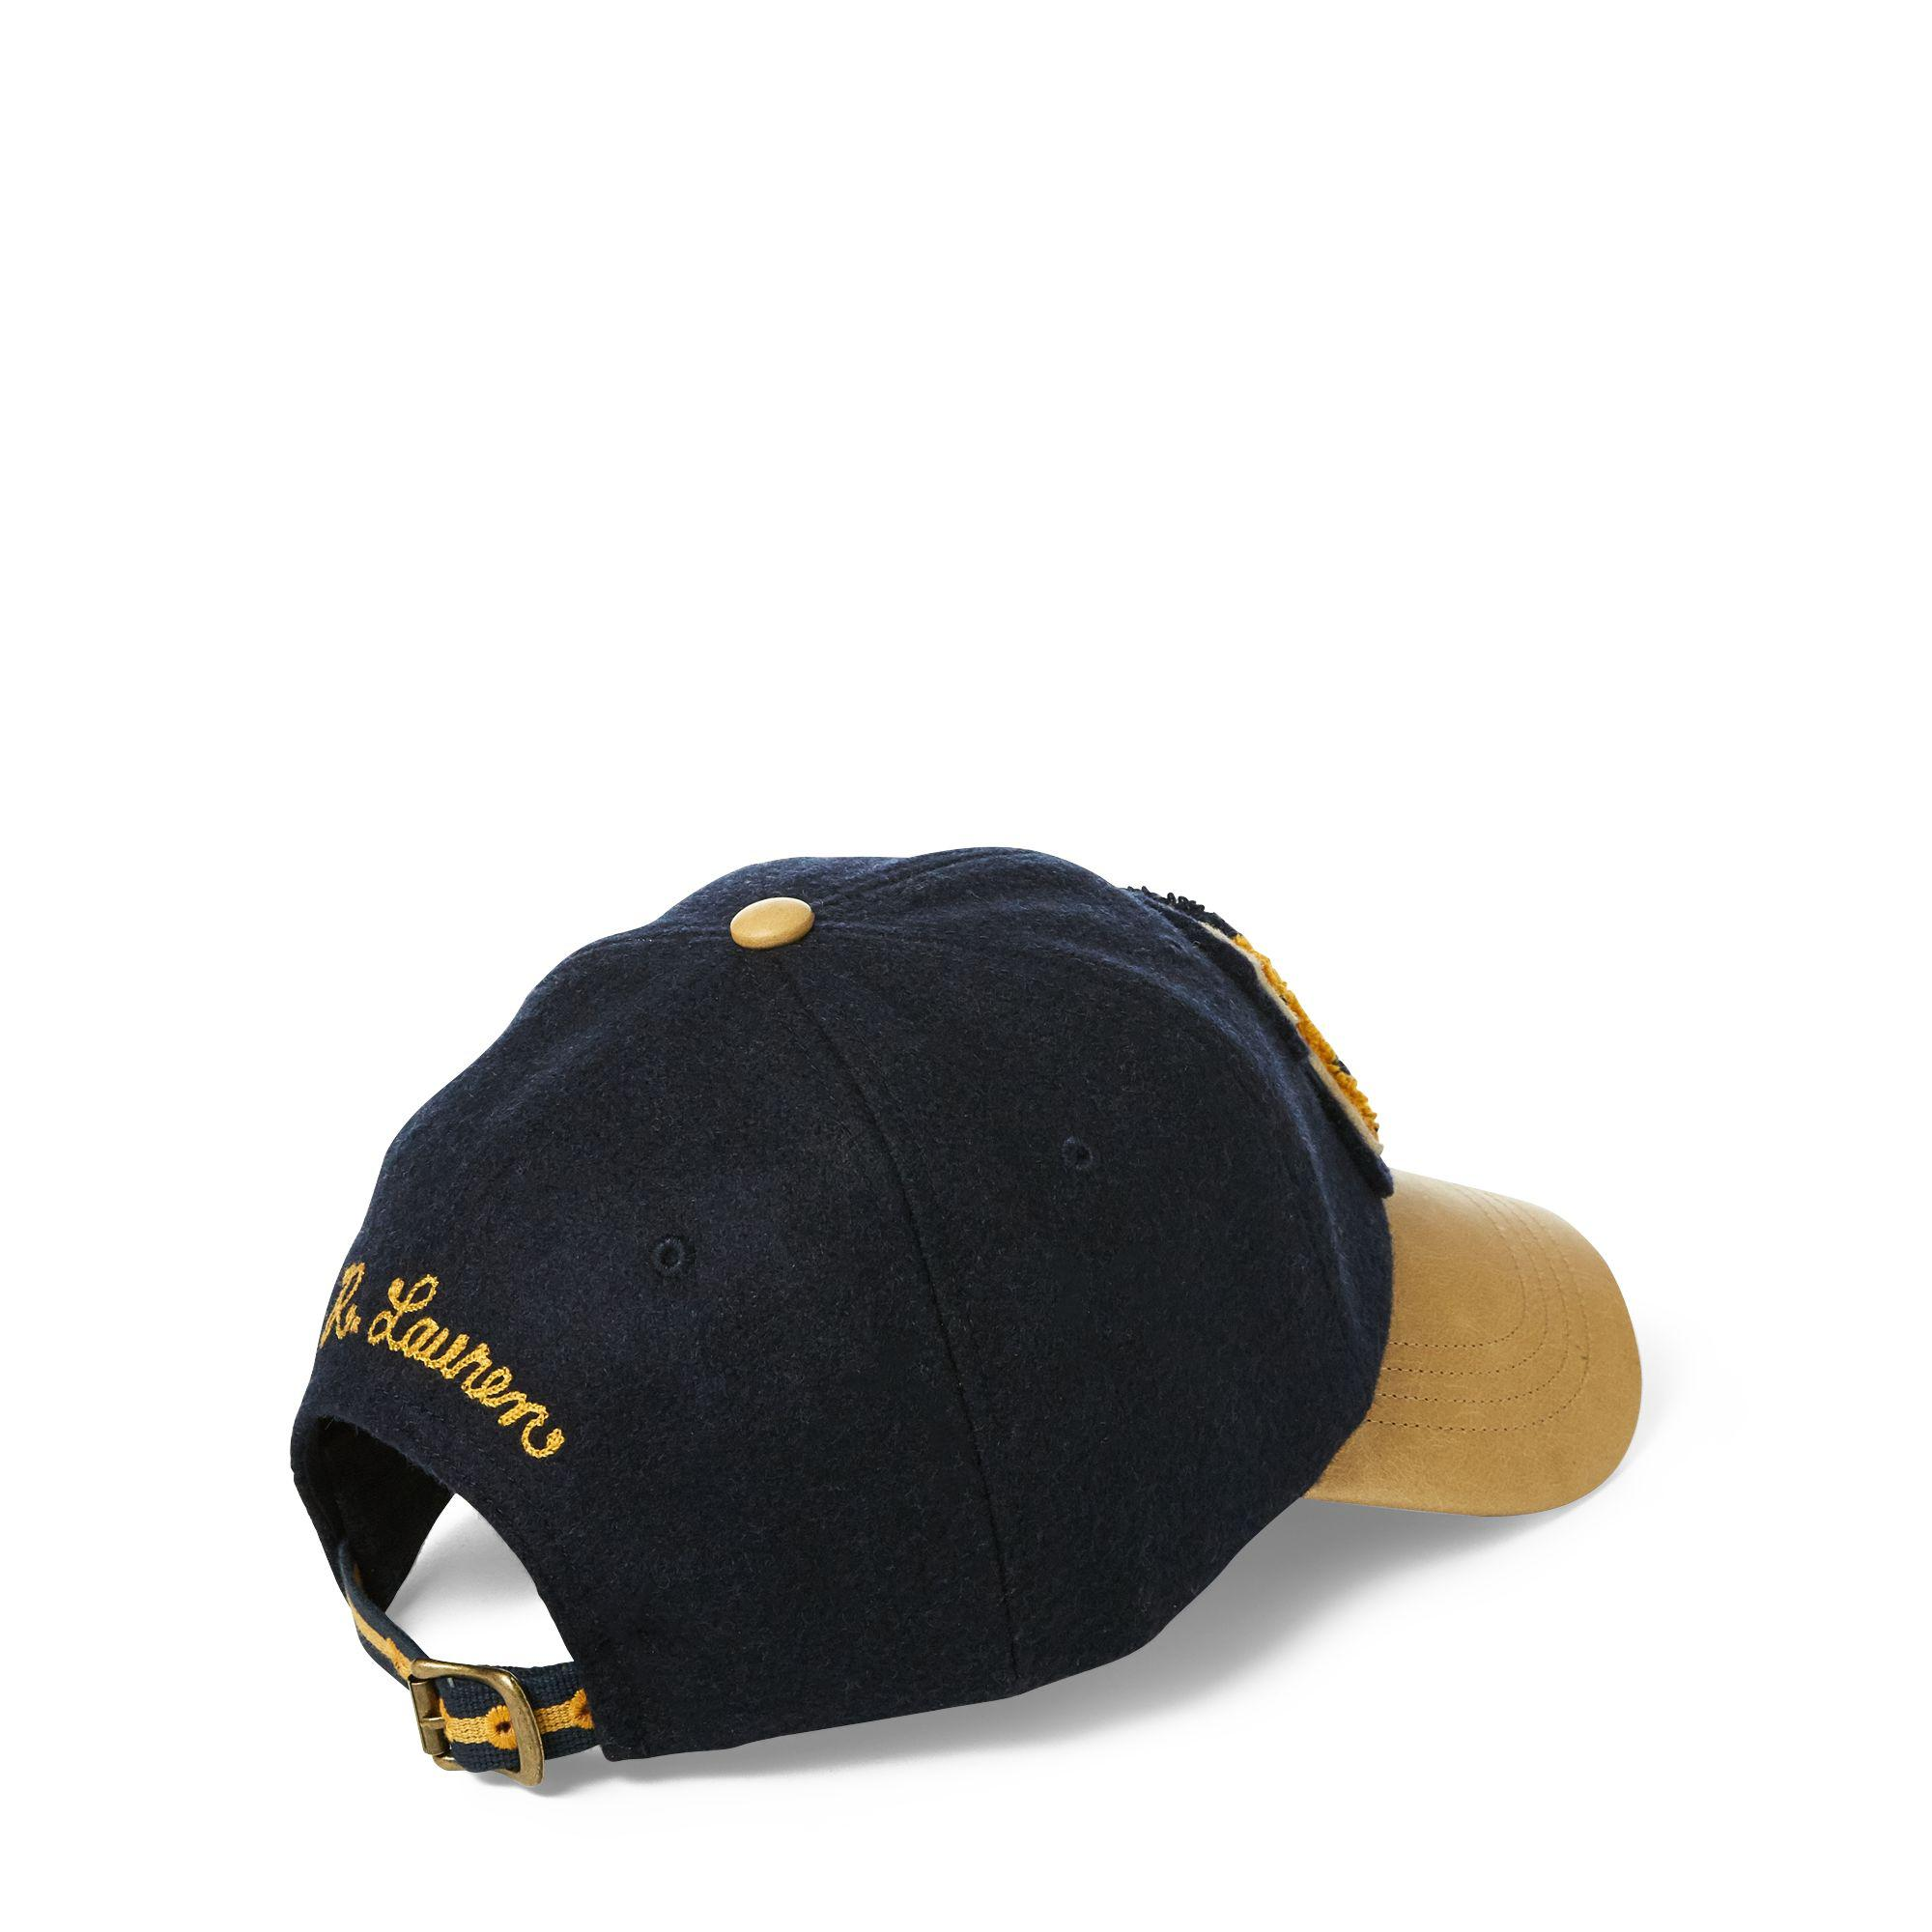 Lyst - Polo Ralph Lauren Wool-leather Letterman Cap in Blue for Men 4ccf9875256